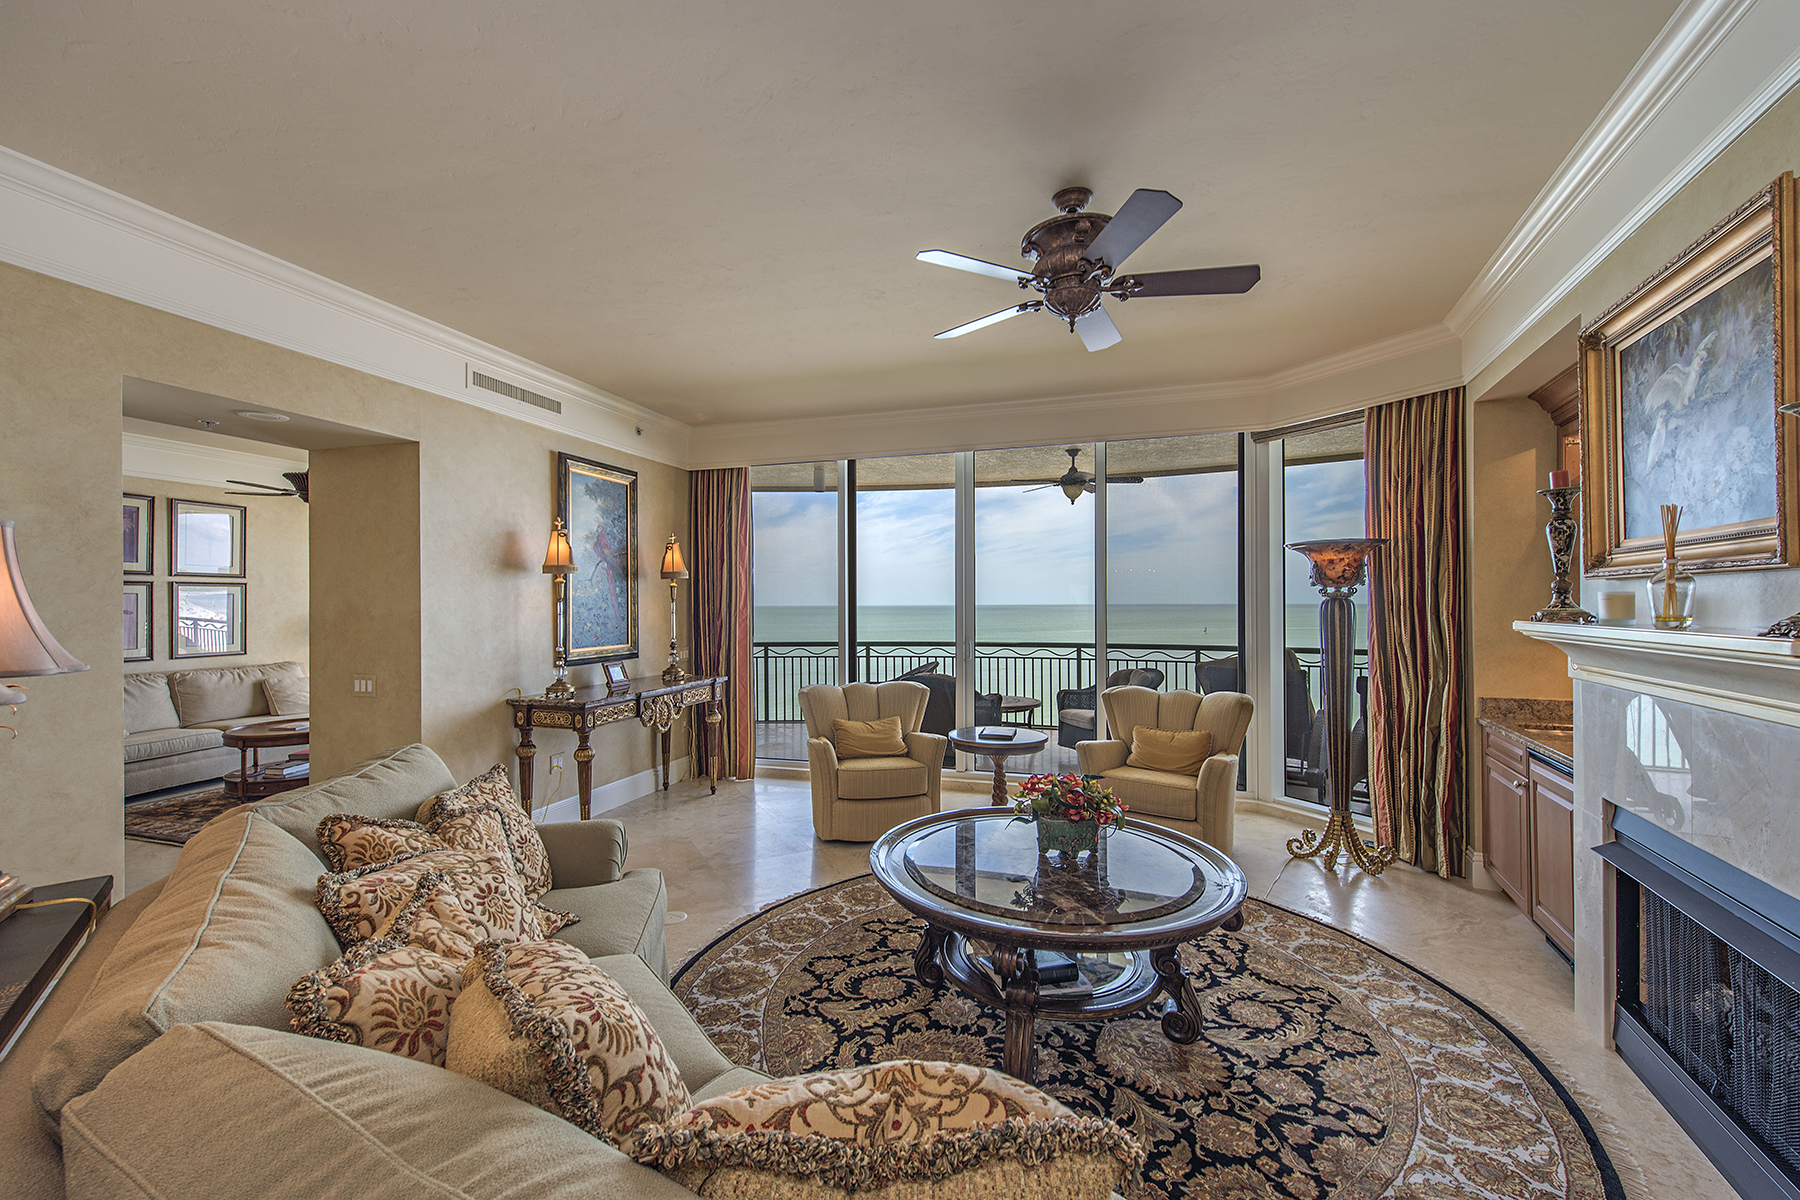 Condominium for Sale at CAPE MARCO - VERA CRUZ 940 Cape Marco Dr 904 Marco Island, Florida 34145 United States